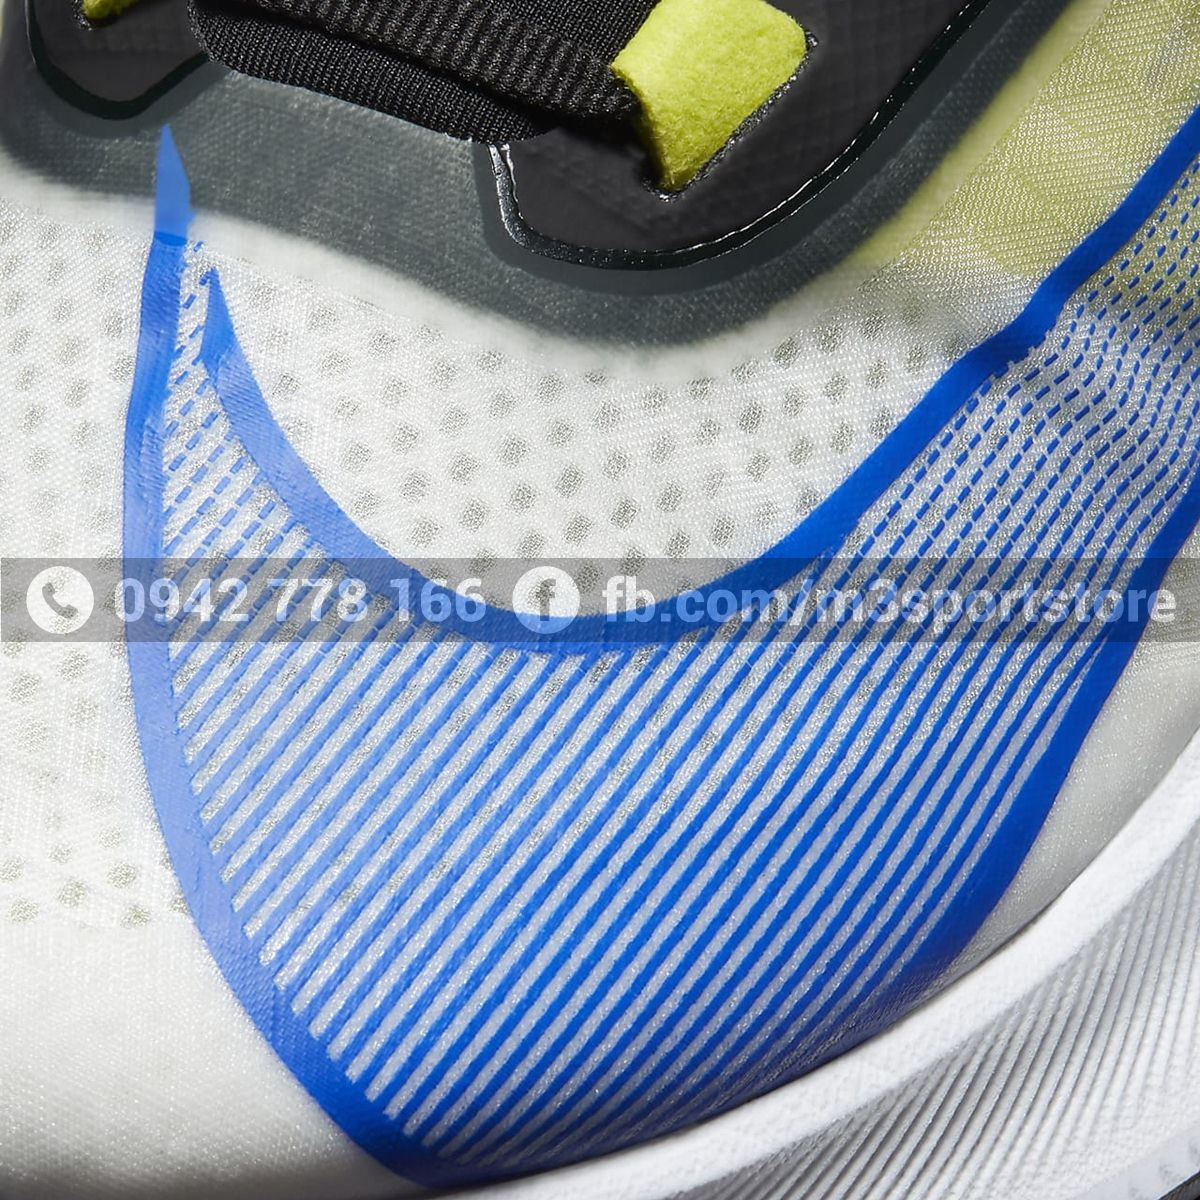 Giày thể thao nam Nike Zoom Fly 3 Ekiden AT8240